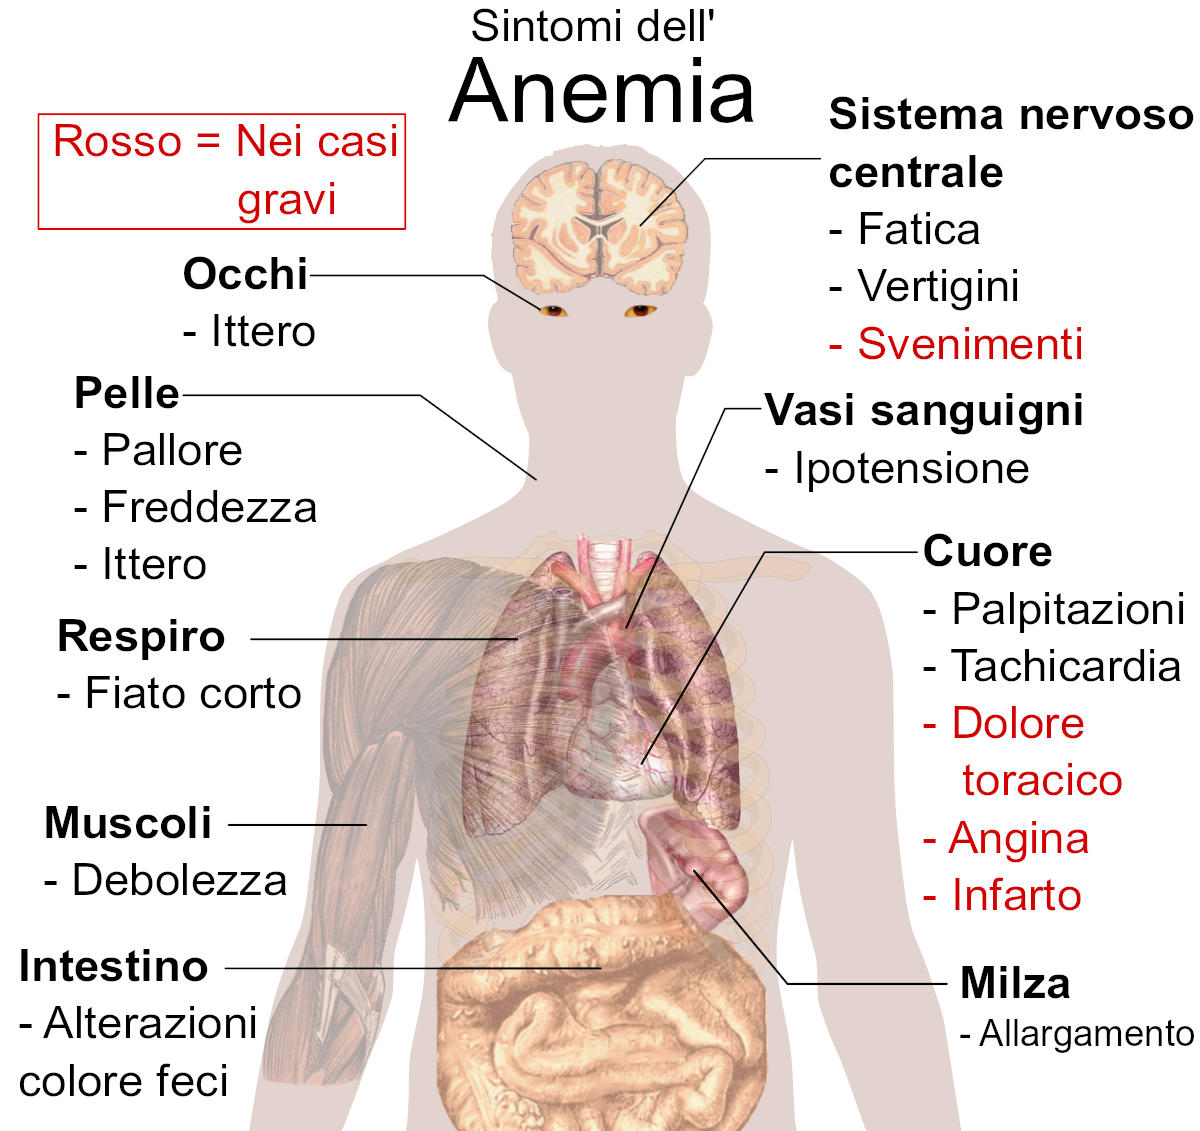 Sintomi dell'anemia